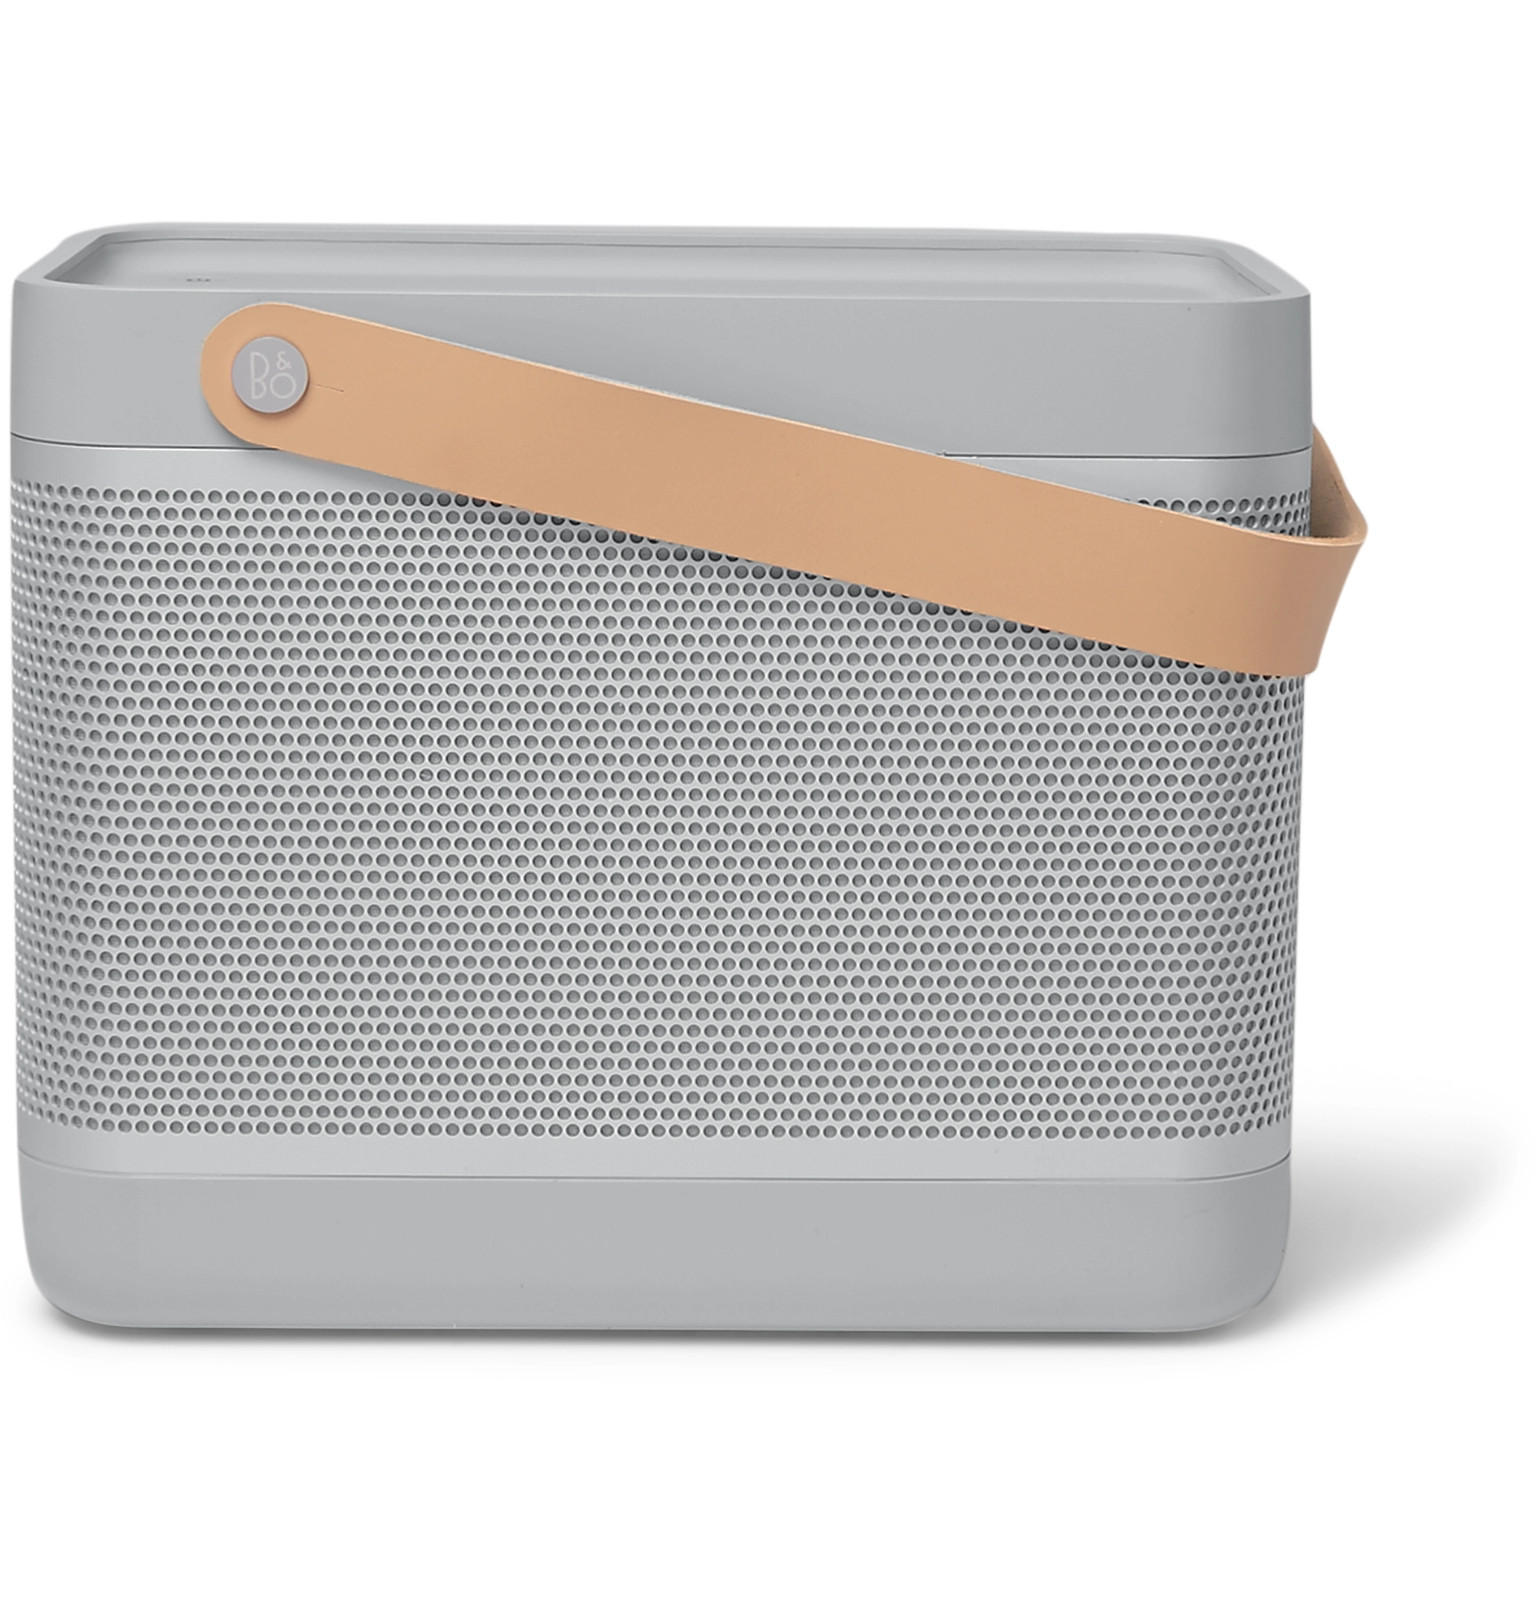 Best Dinner Party Playlist Part - 49: Bu0026O Play Beolit 15 AirPlay Portable Wireless Speaker